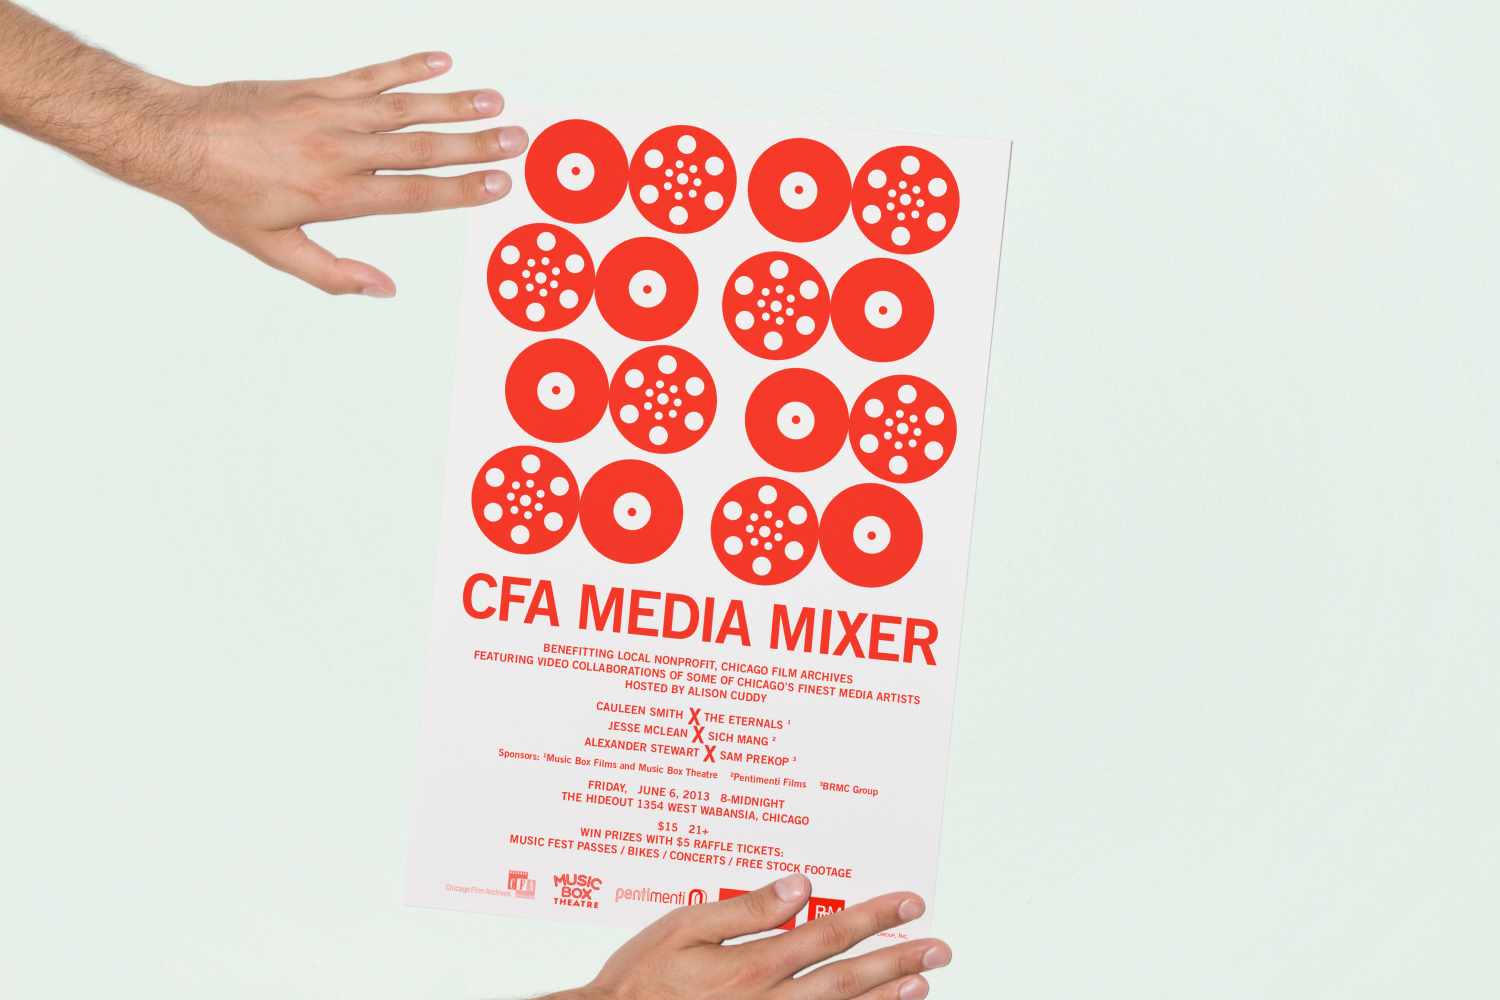 Chicago Film Archives Media Mixer poster design.